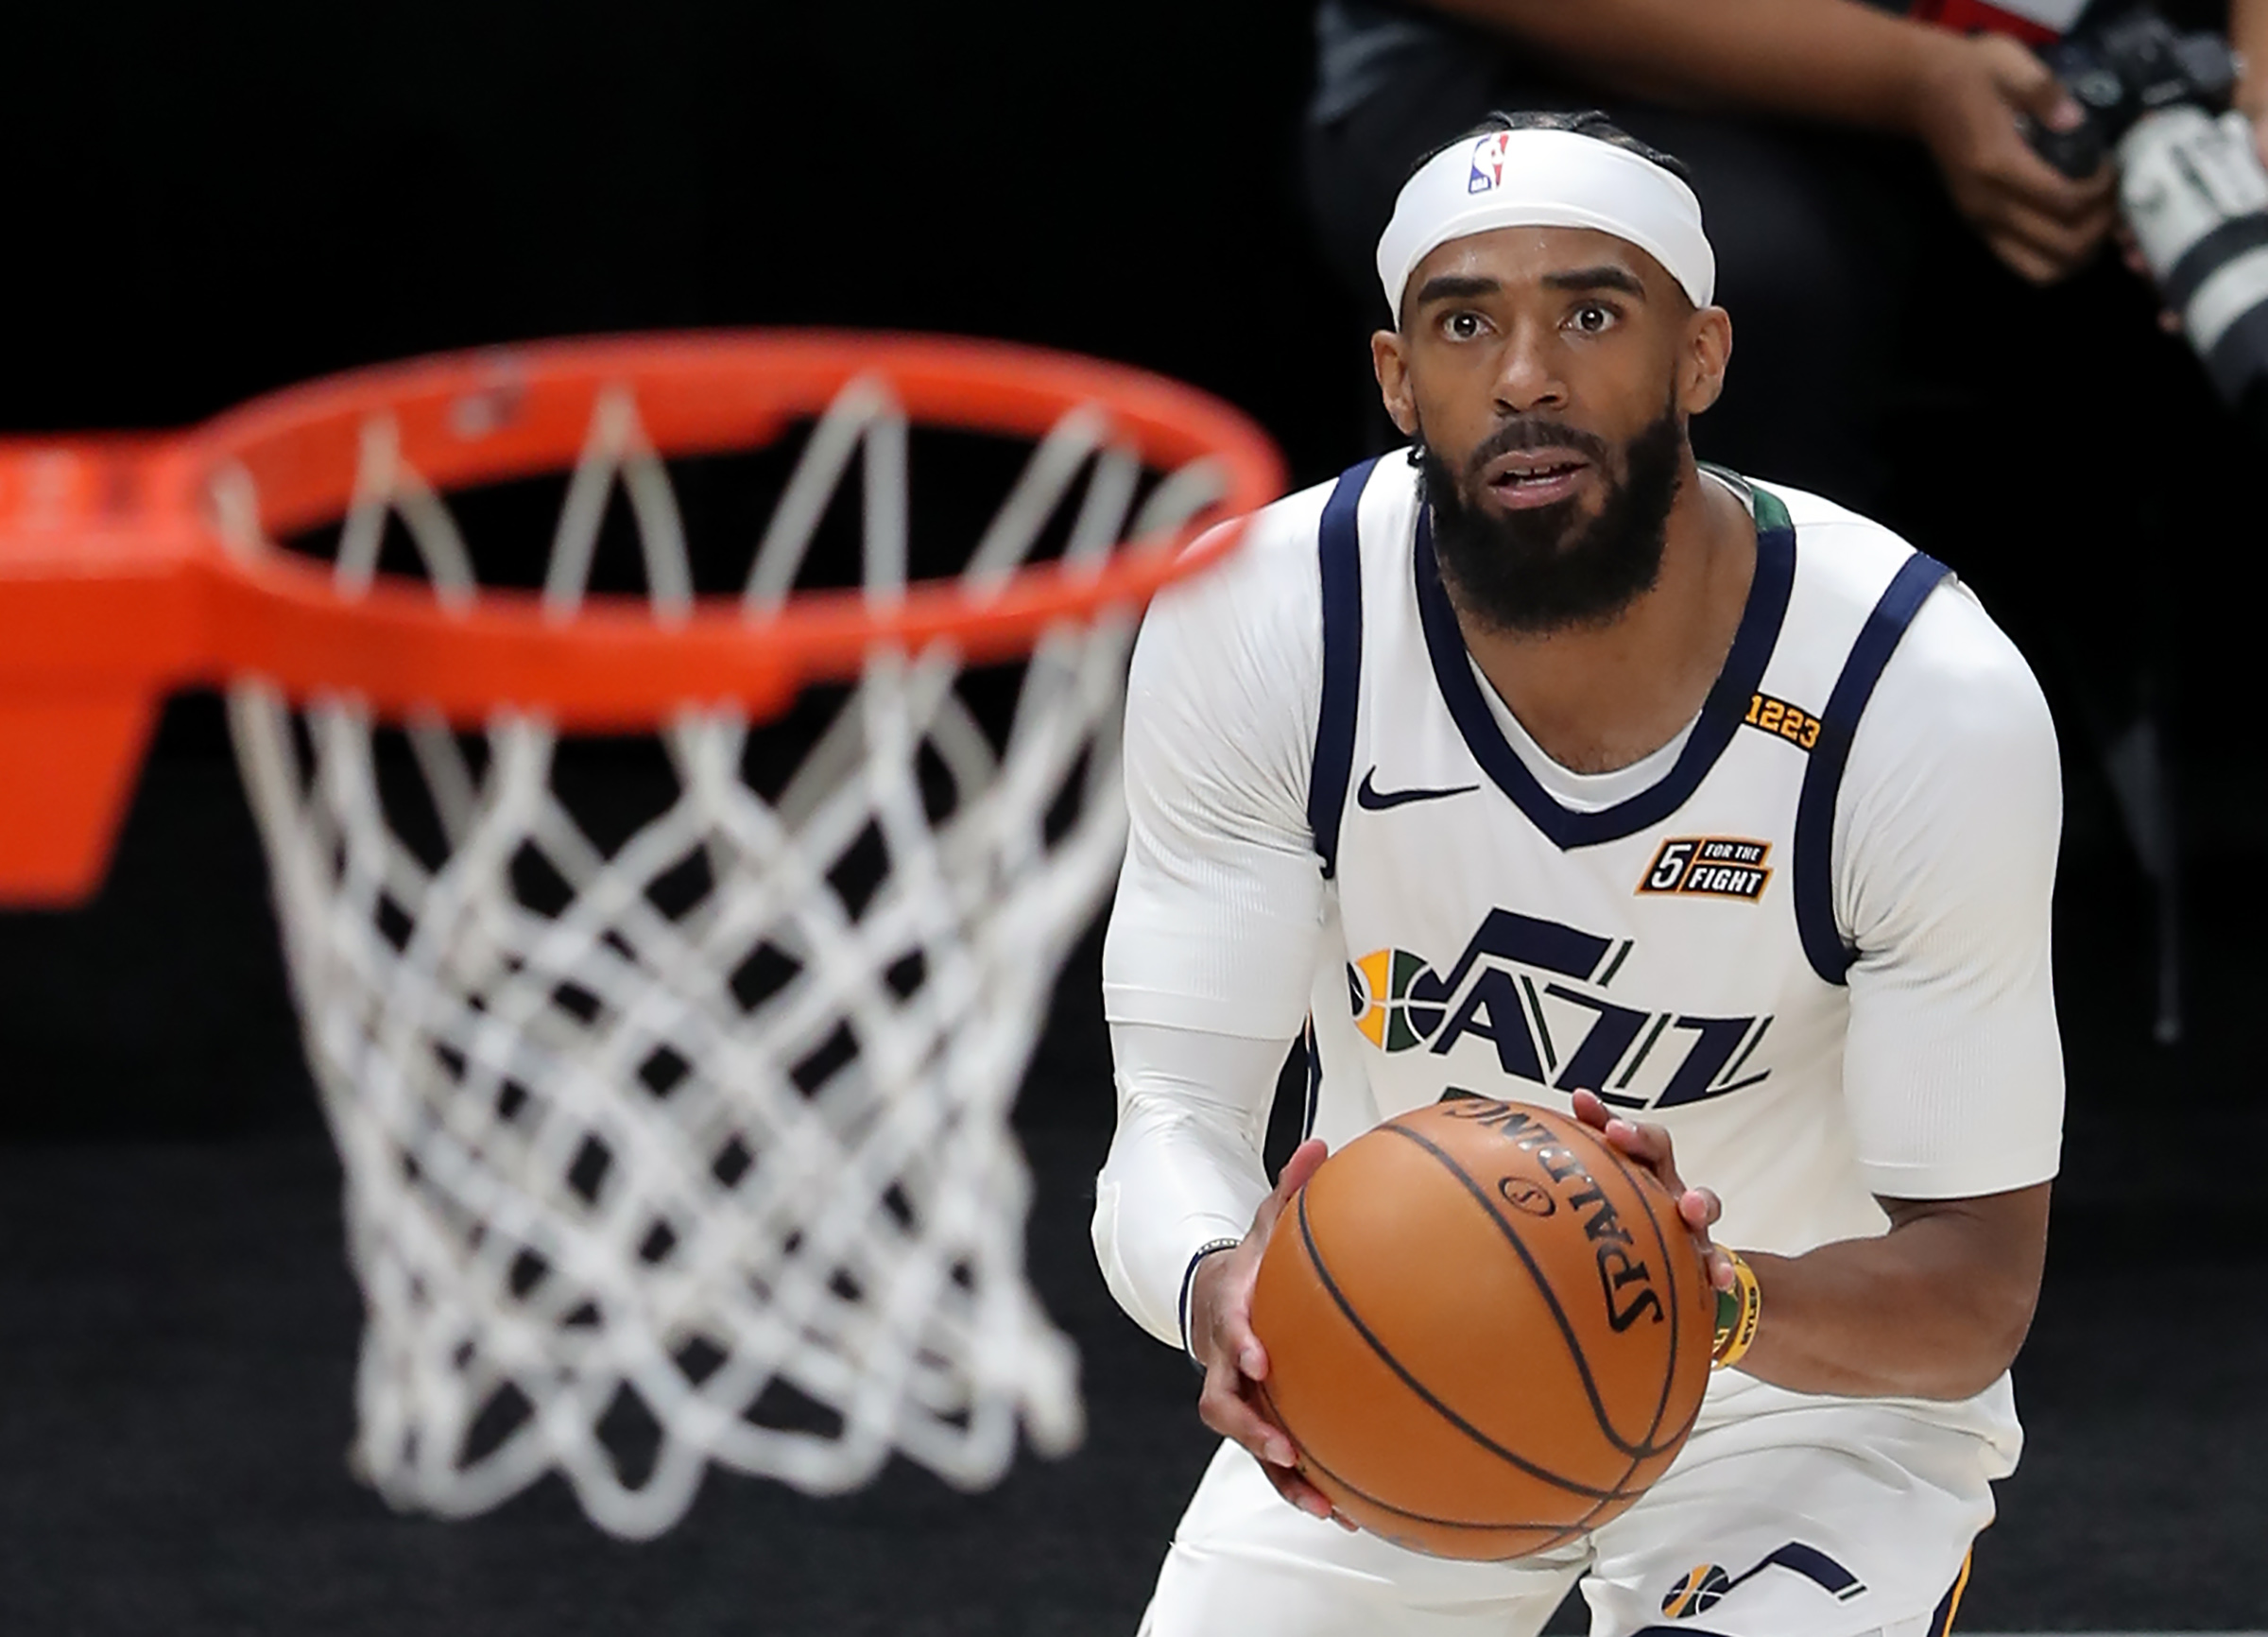 Utah Jazz guard Mike Conley eyes the basket as he goes up for and hits a 3-point shot.